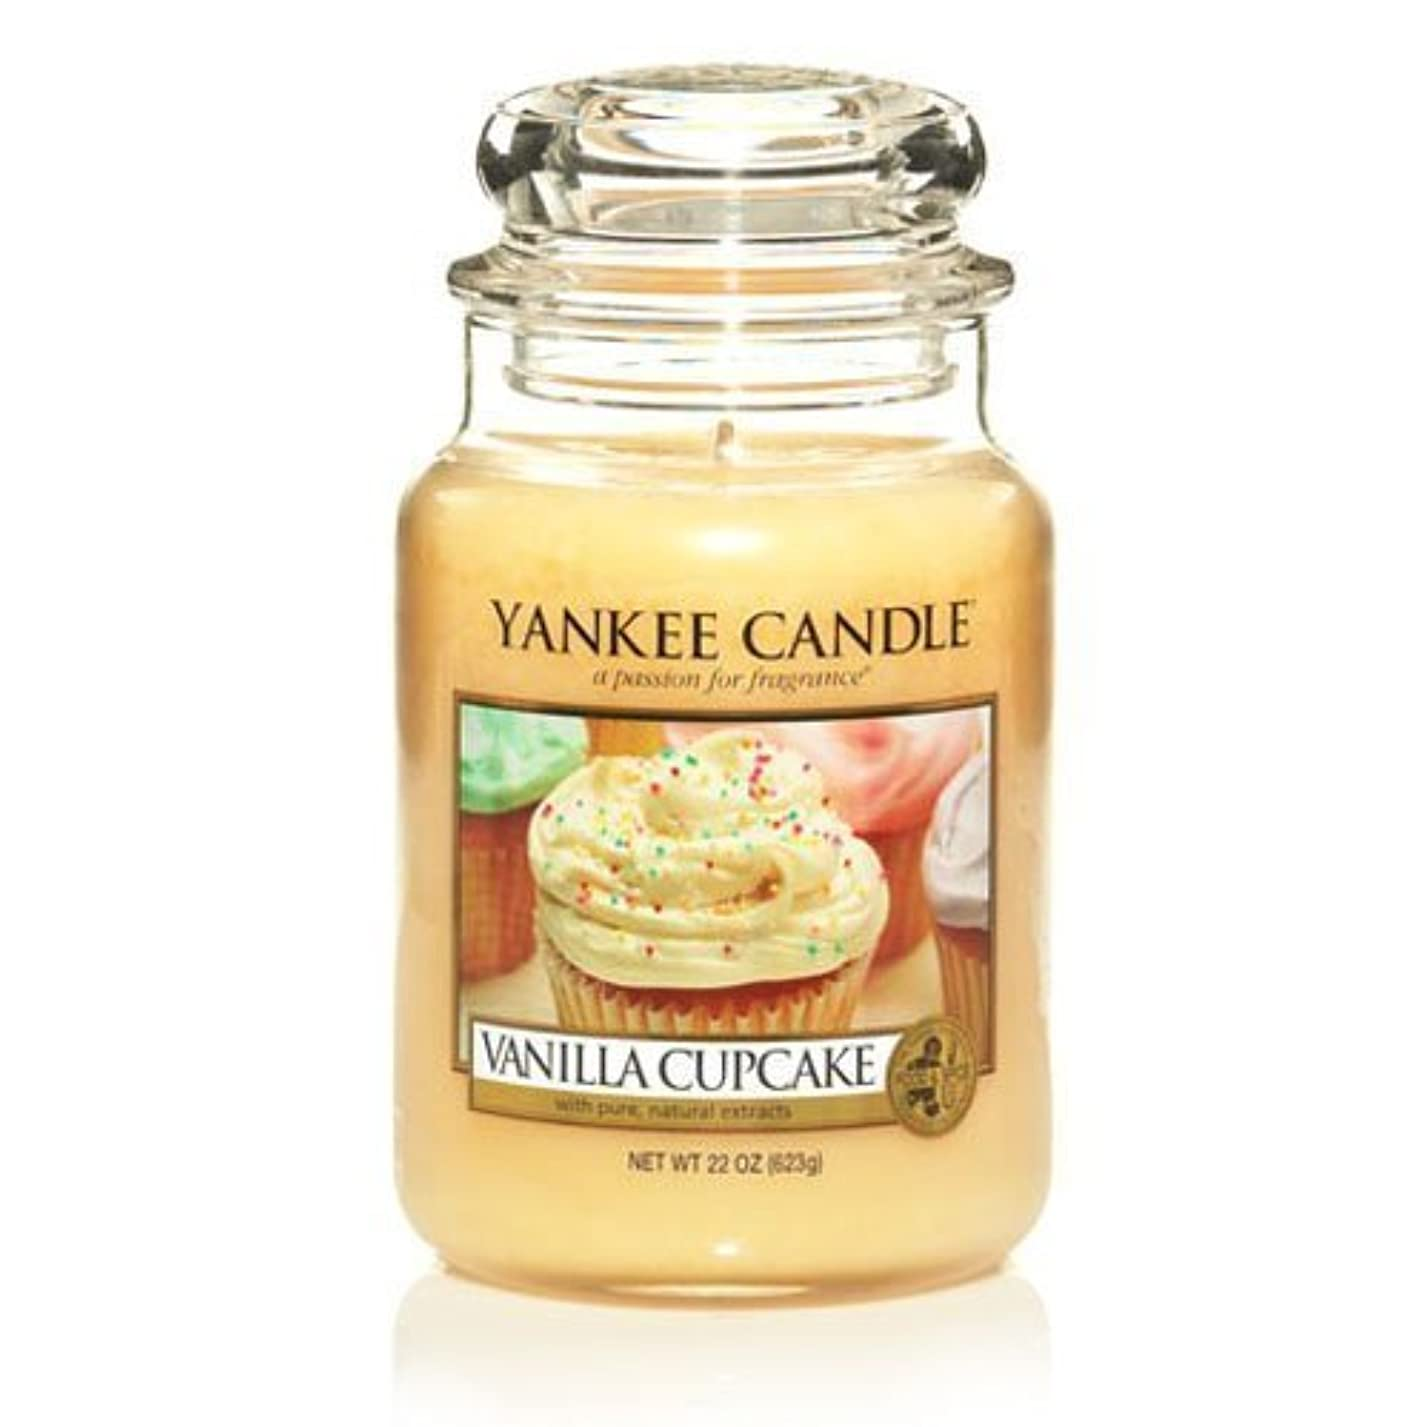 背の高い悪性さわやかLarge Yankee CAndle Jar Vanilla Cupcake by Yankee Candles [並行輸入品]